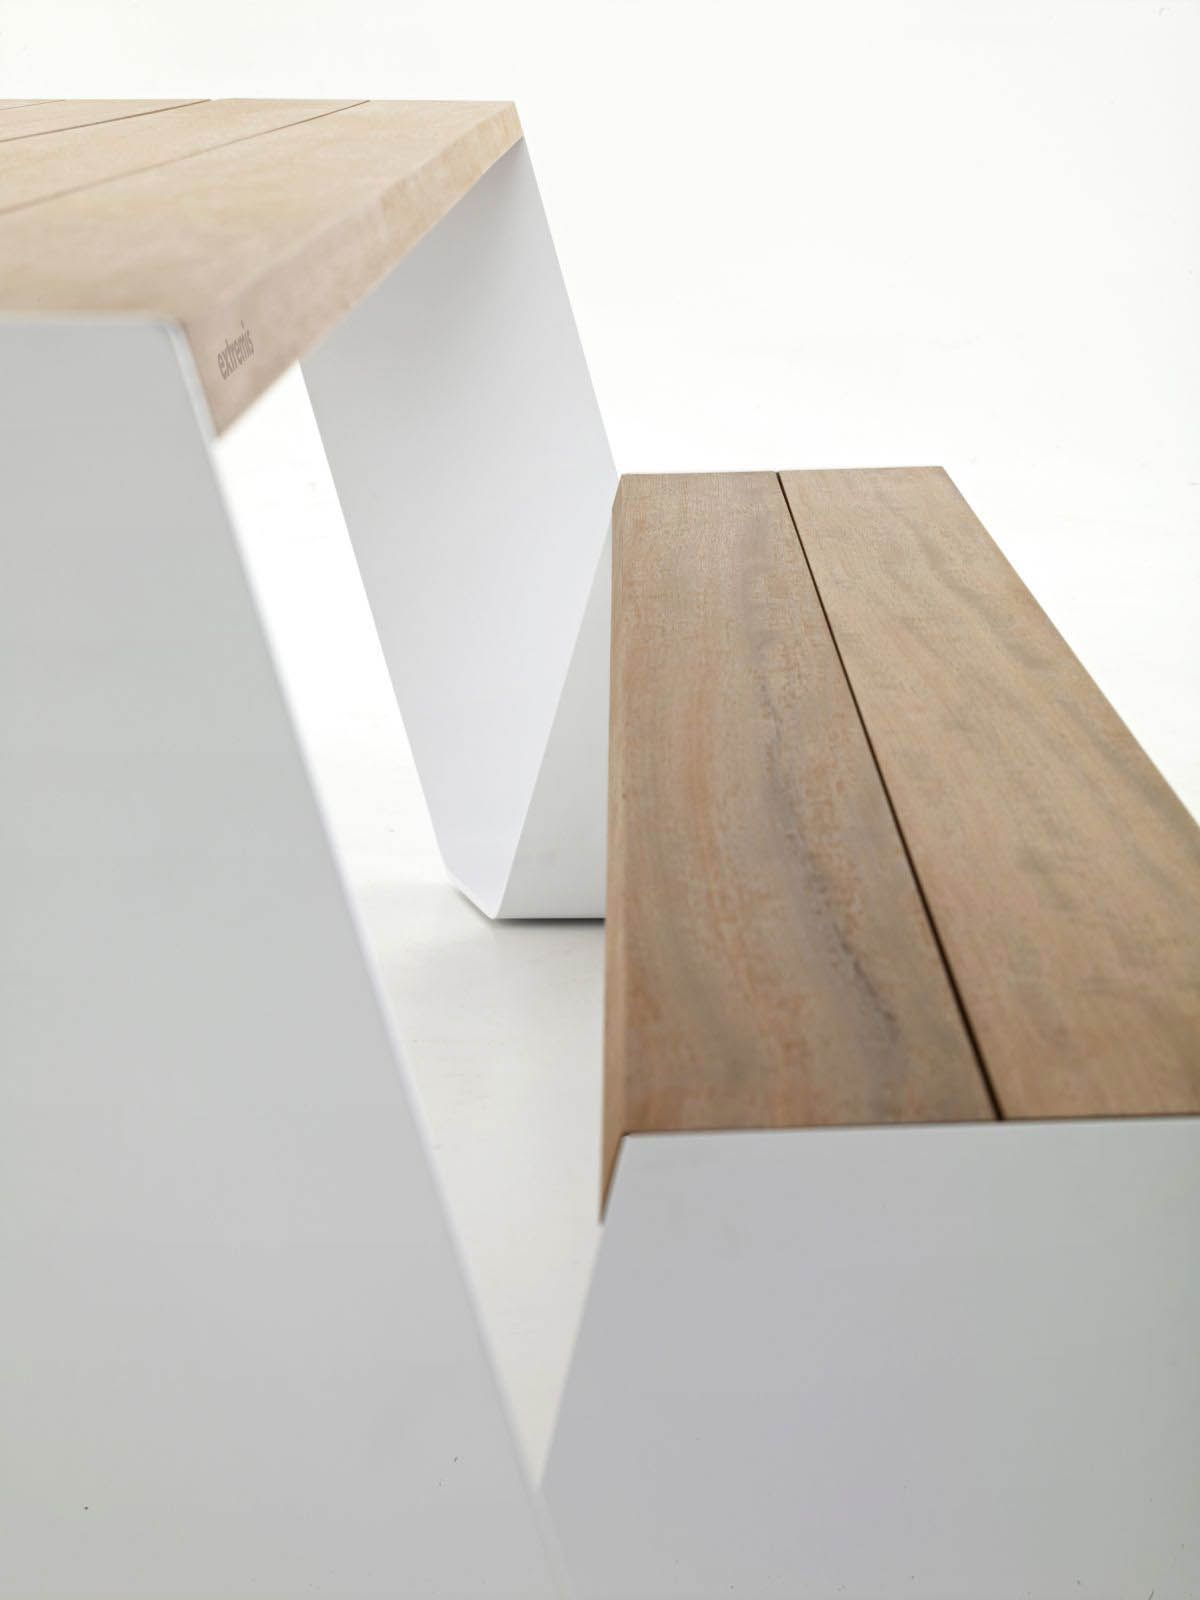 Hooper Clearly Bears Resemblance To The Traditional Picnic Table Everybody Knows But As Is Typical Of Extremis It Goes Beyond The Expected T Table De Jardin Bois Table Bois Et Table